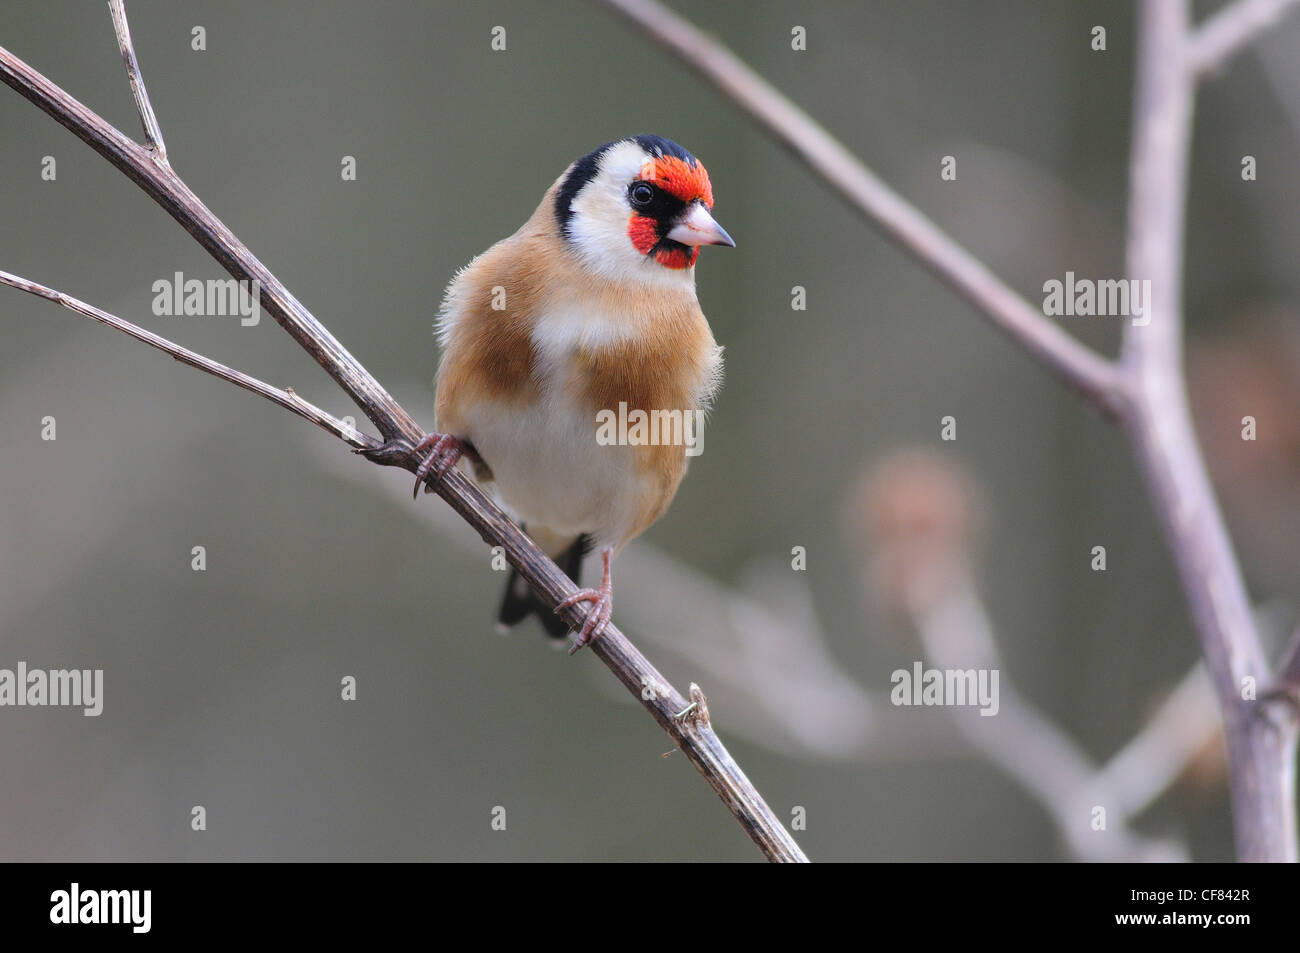 A goldfinch perched on a twig UK - Stock Image